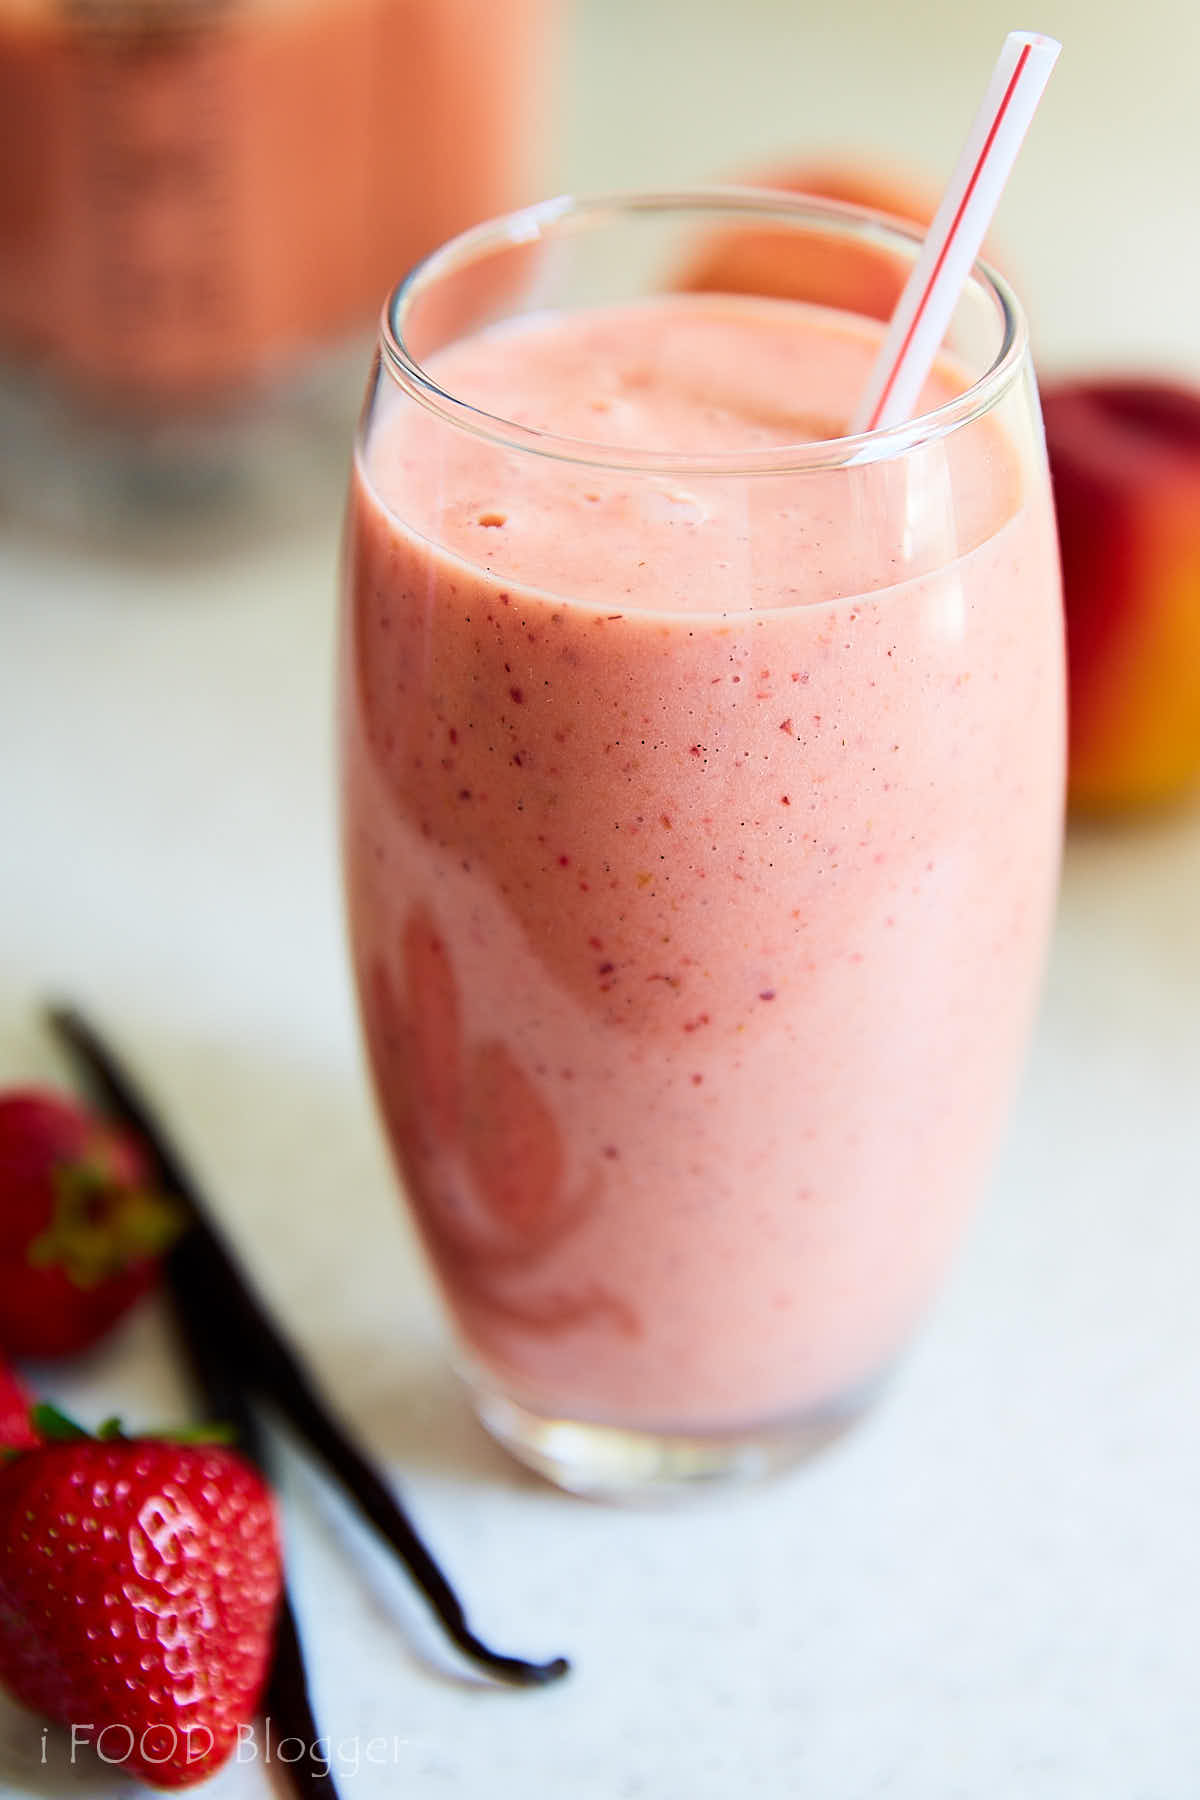 Delicious and healthy peach smoothie with strawberries, vanilla and maple syrup. Perfect for starting a day on a healthy note. | ifoodblogger.com